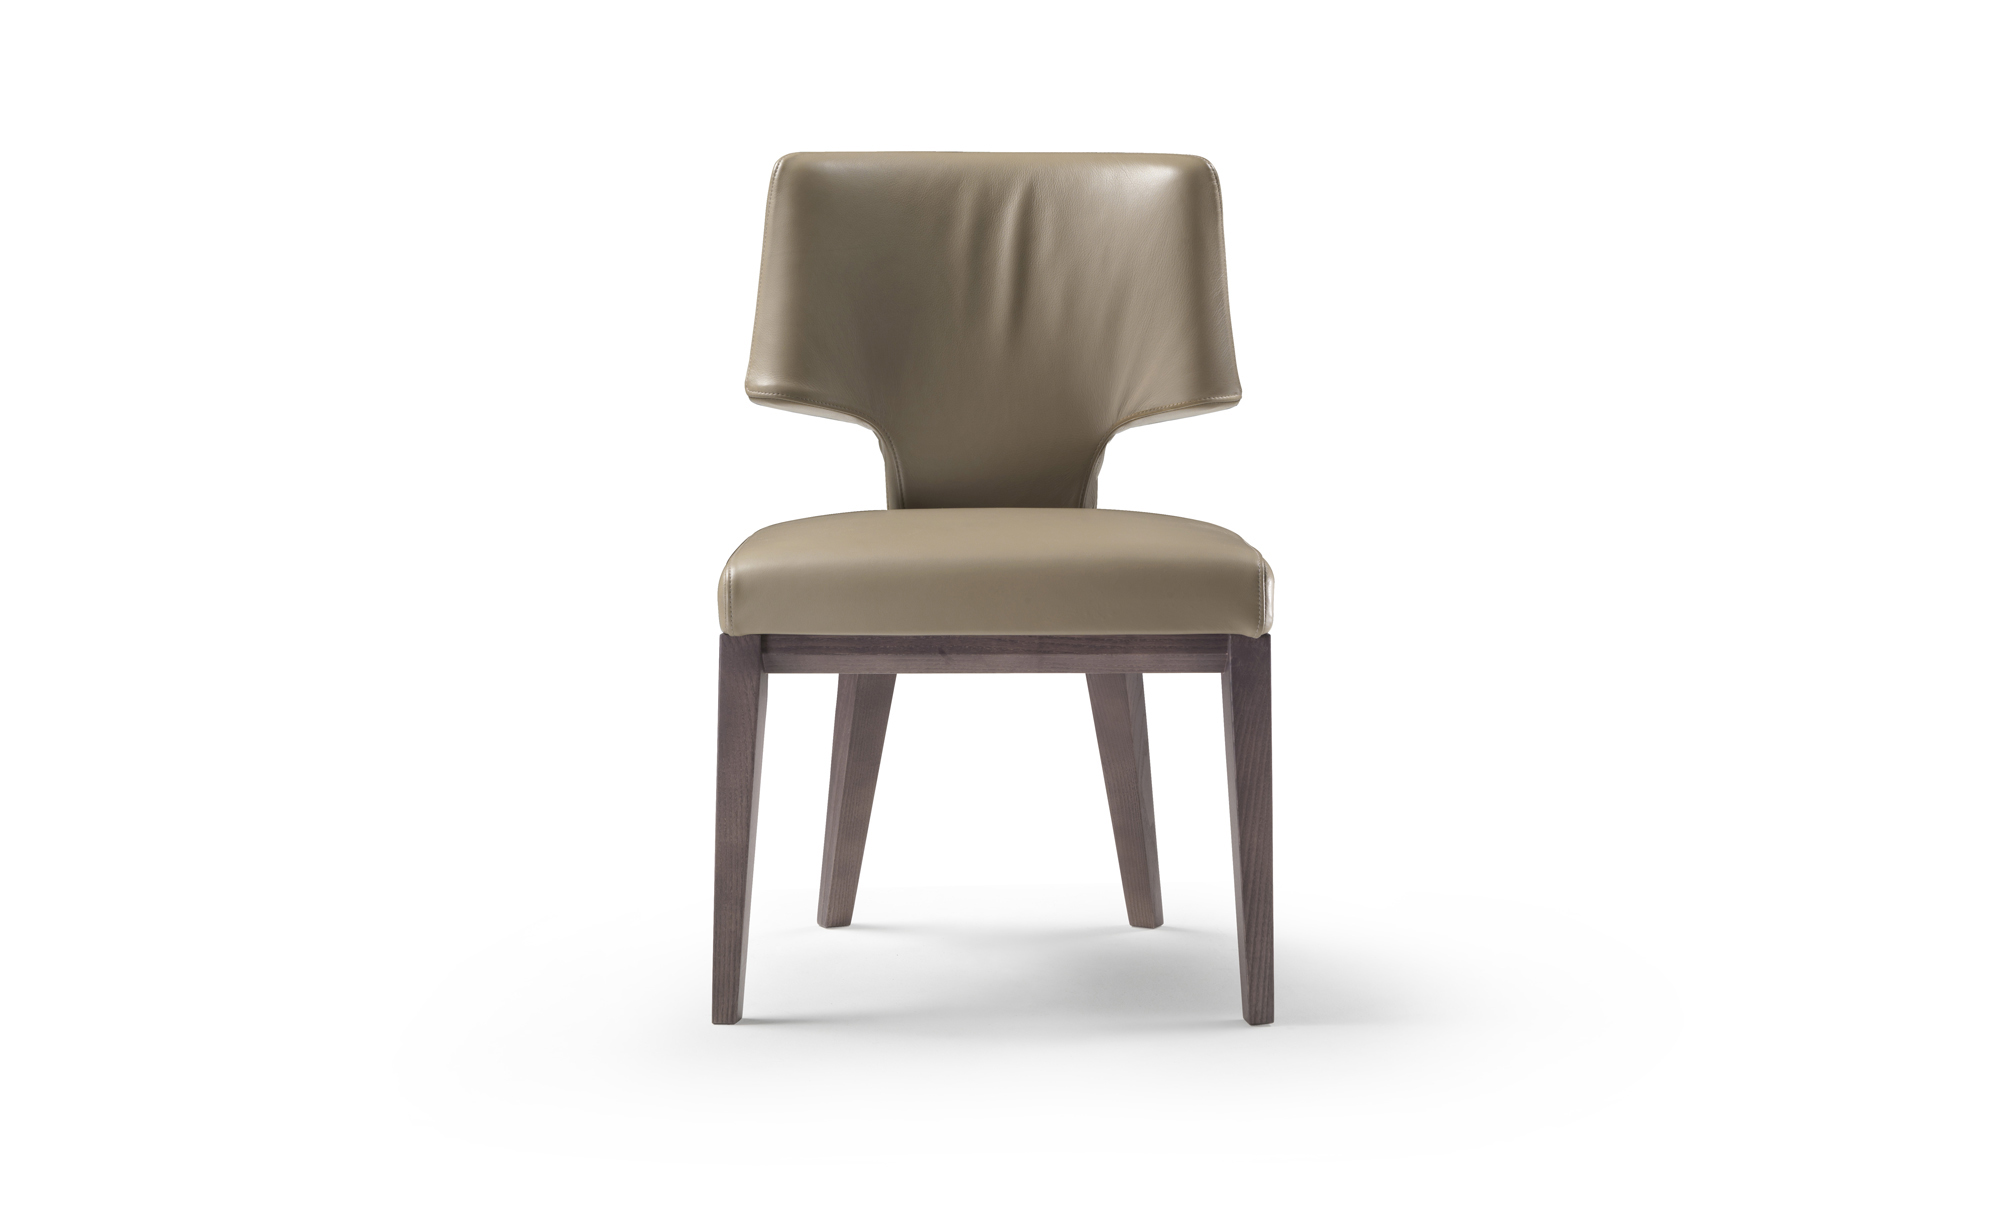 Dining Stools Aline Dining Chair By Flexform Mood Fanuli Furniture